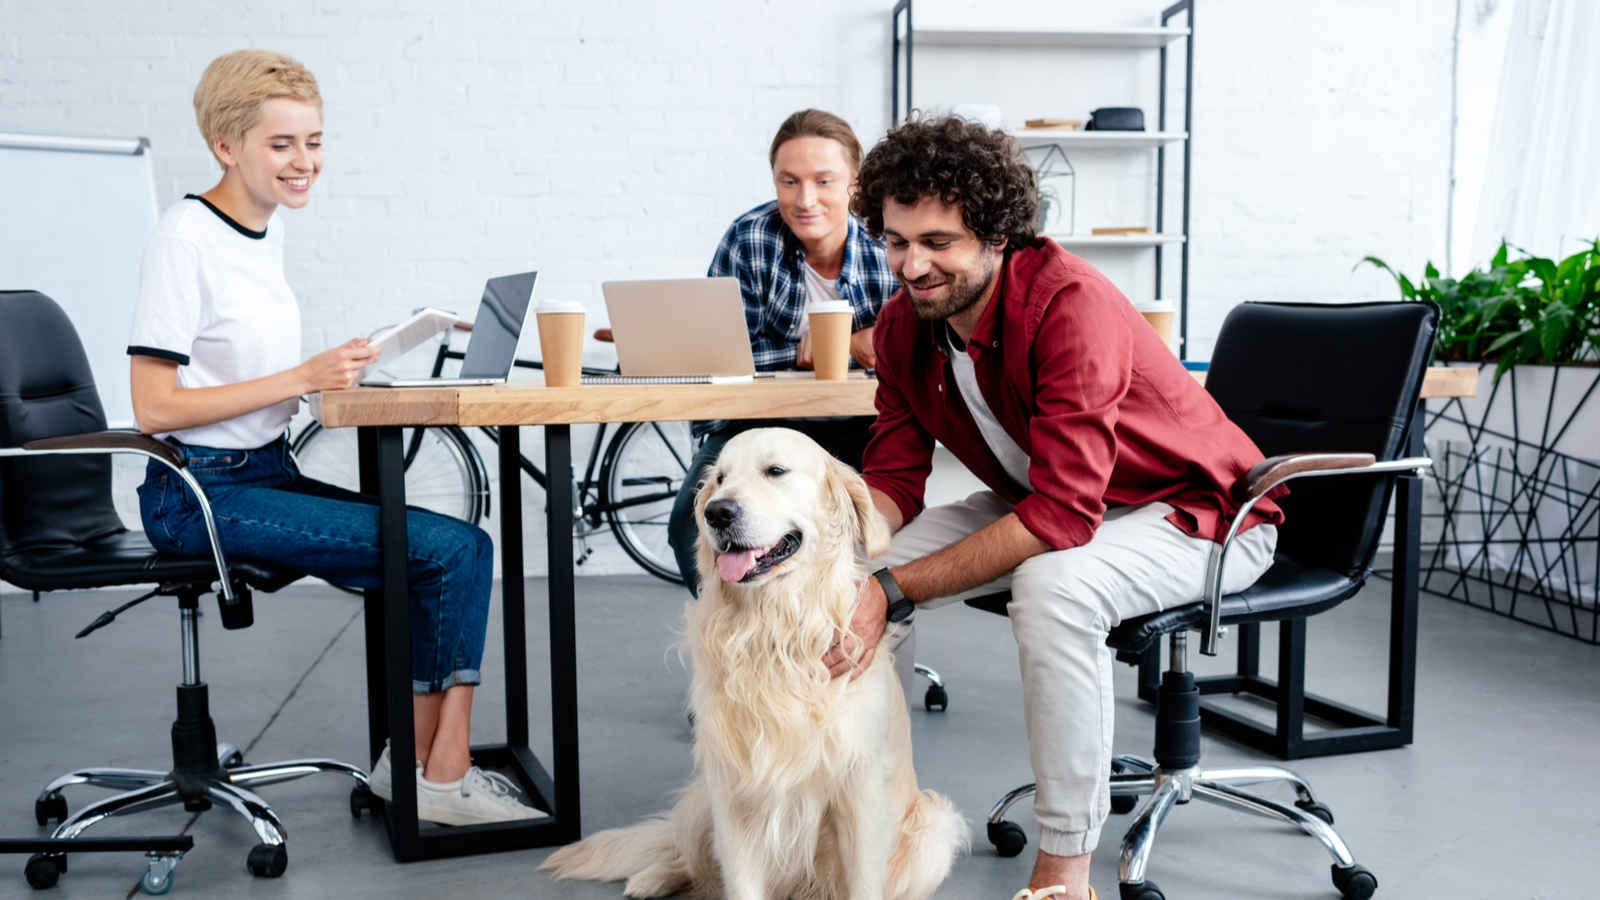 A group of people at a table in an office watching a coworker pet a dog.